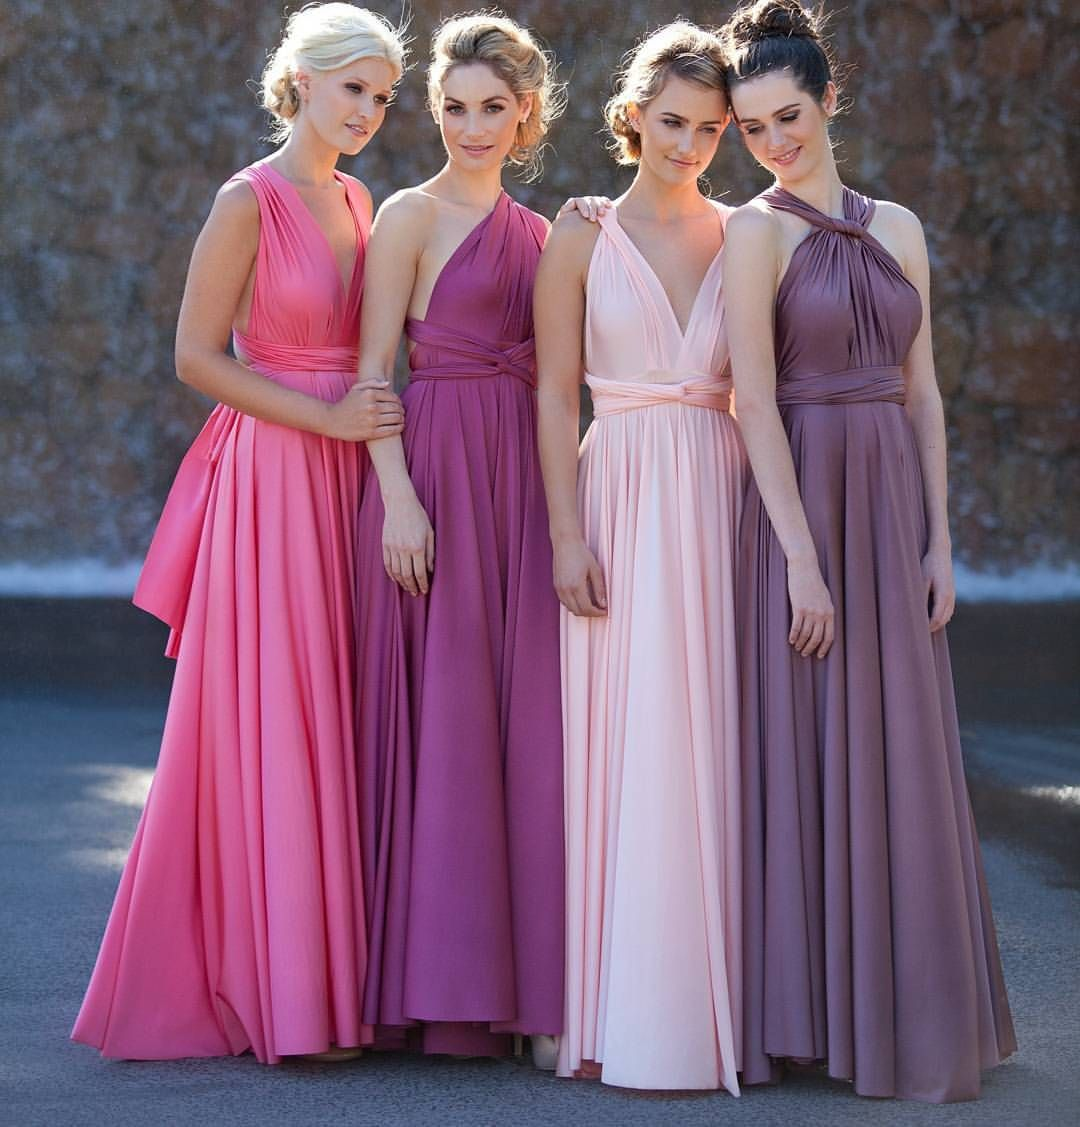 Perfect colors | Wedding Bliss | Pinterest